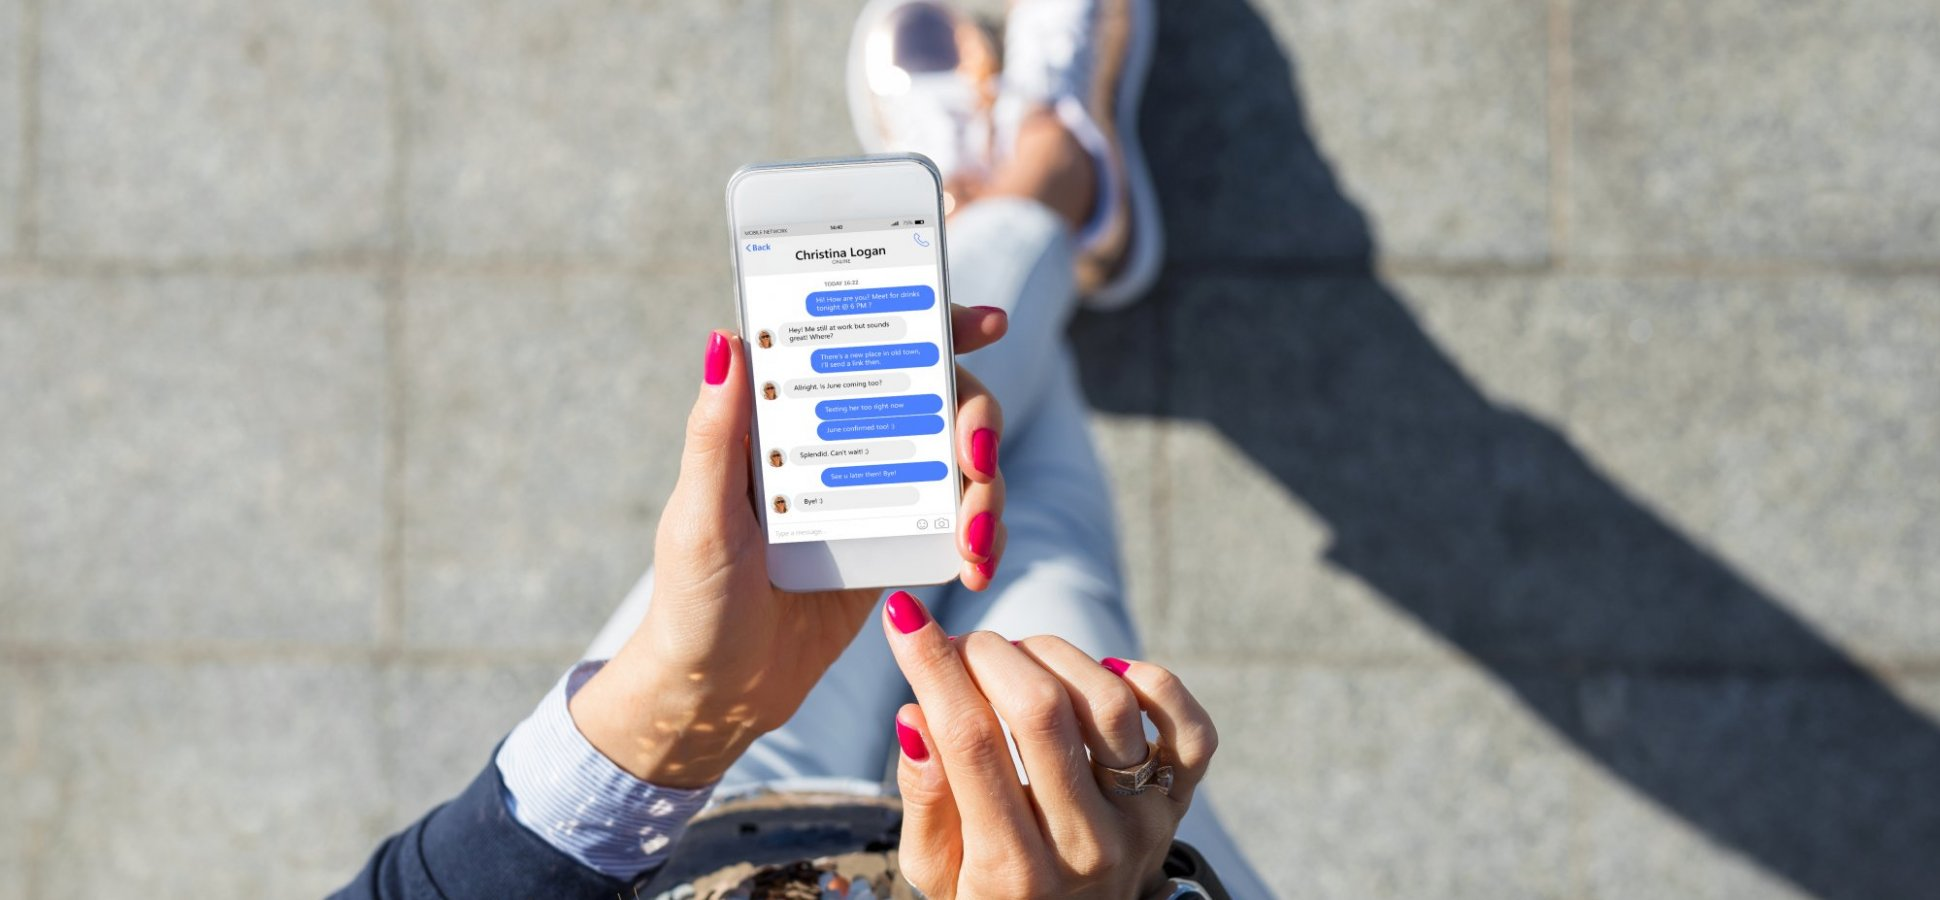 6 Facebook Messenger Tools You Need to Scale Your Growth